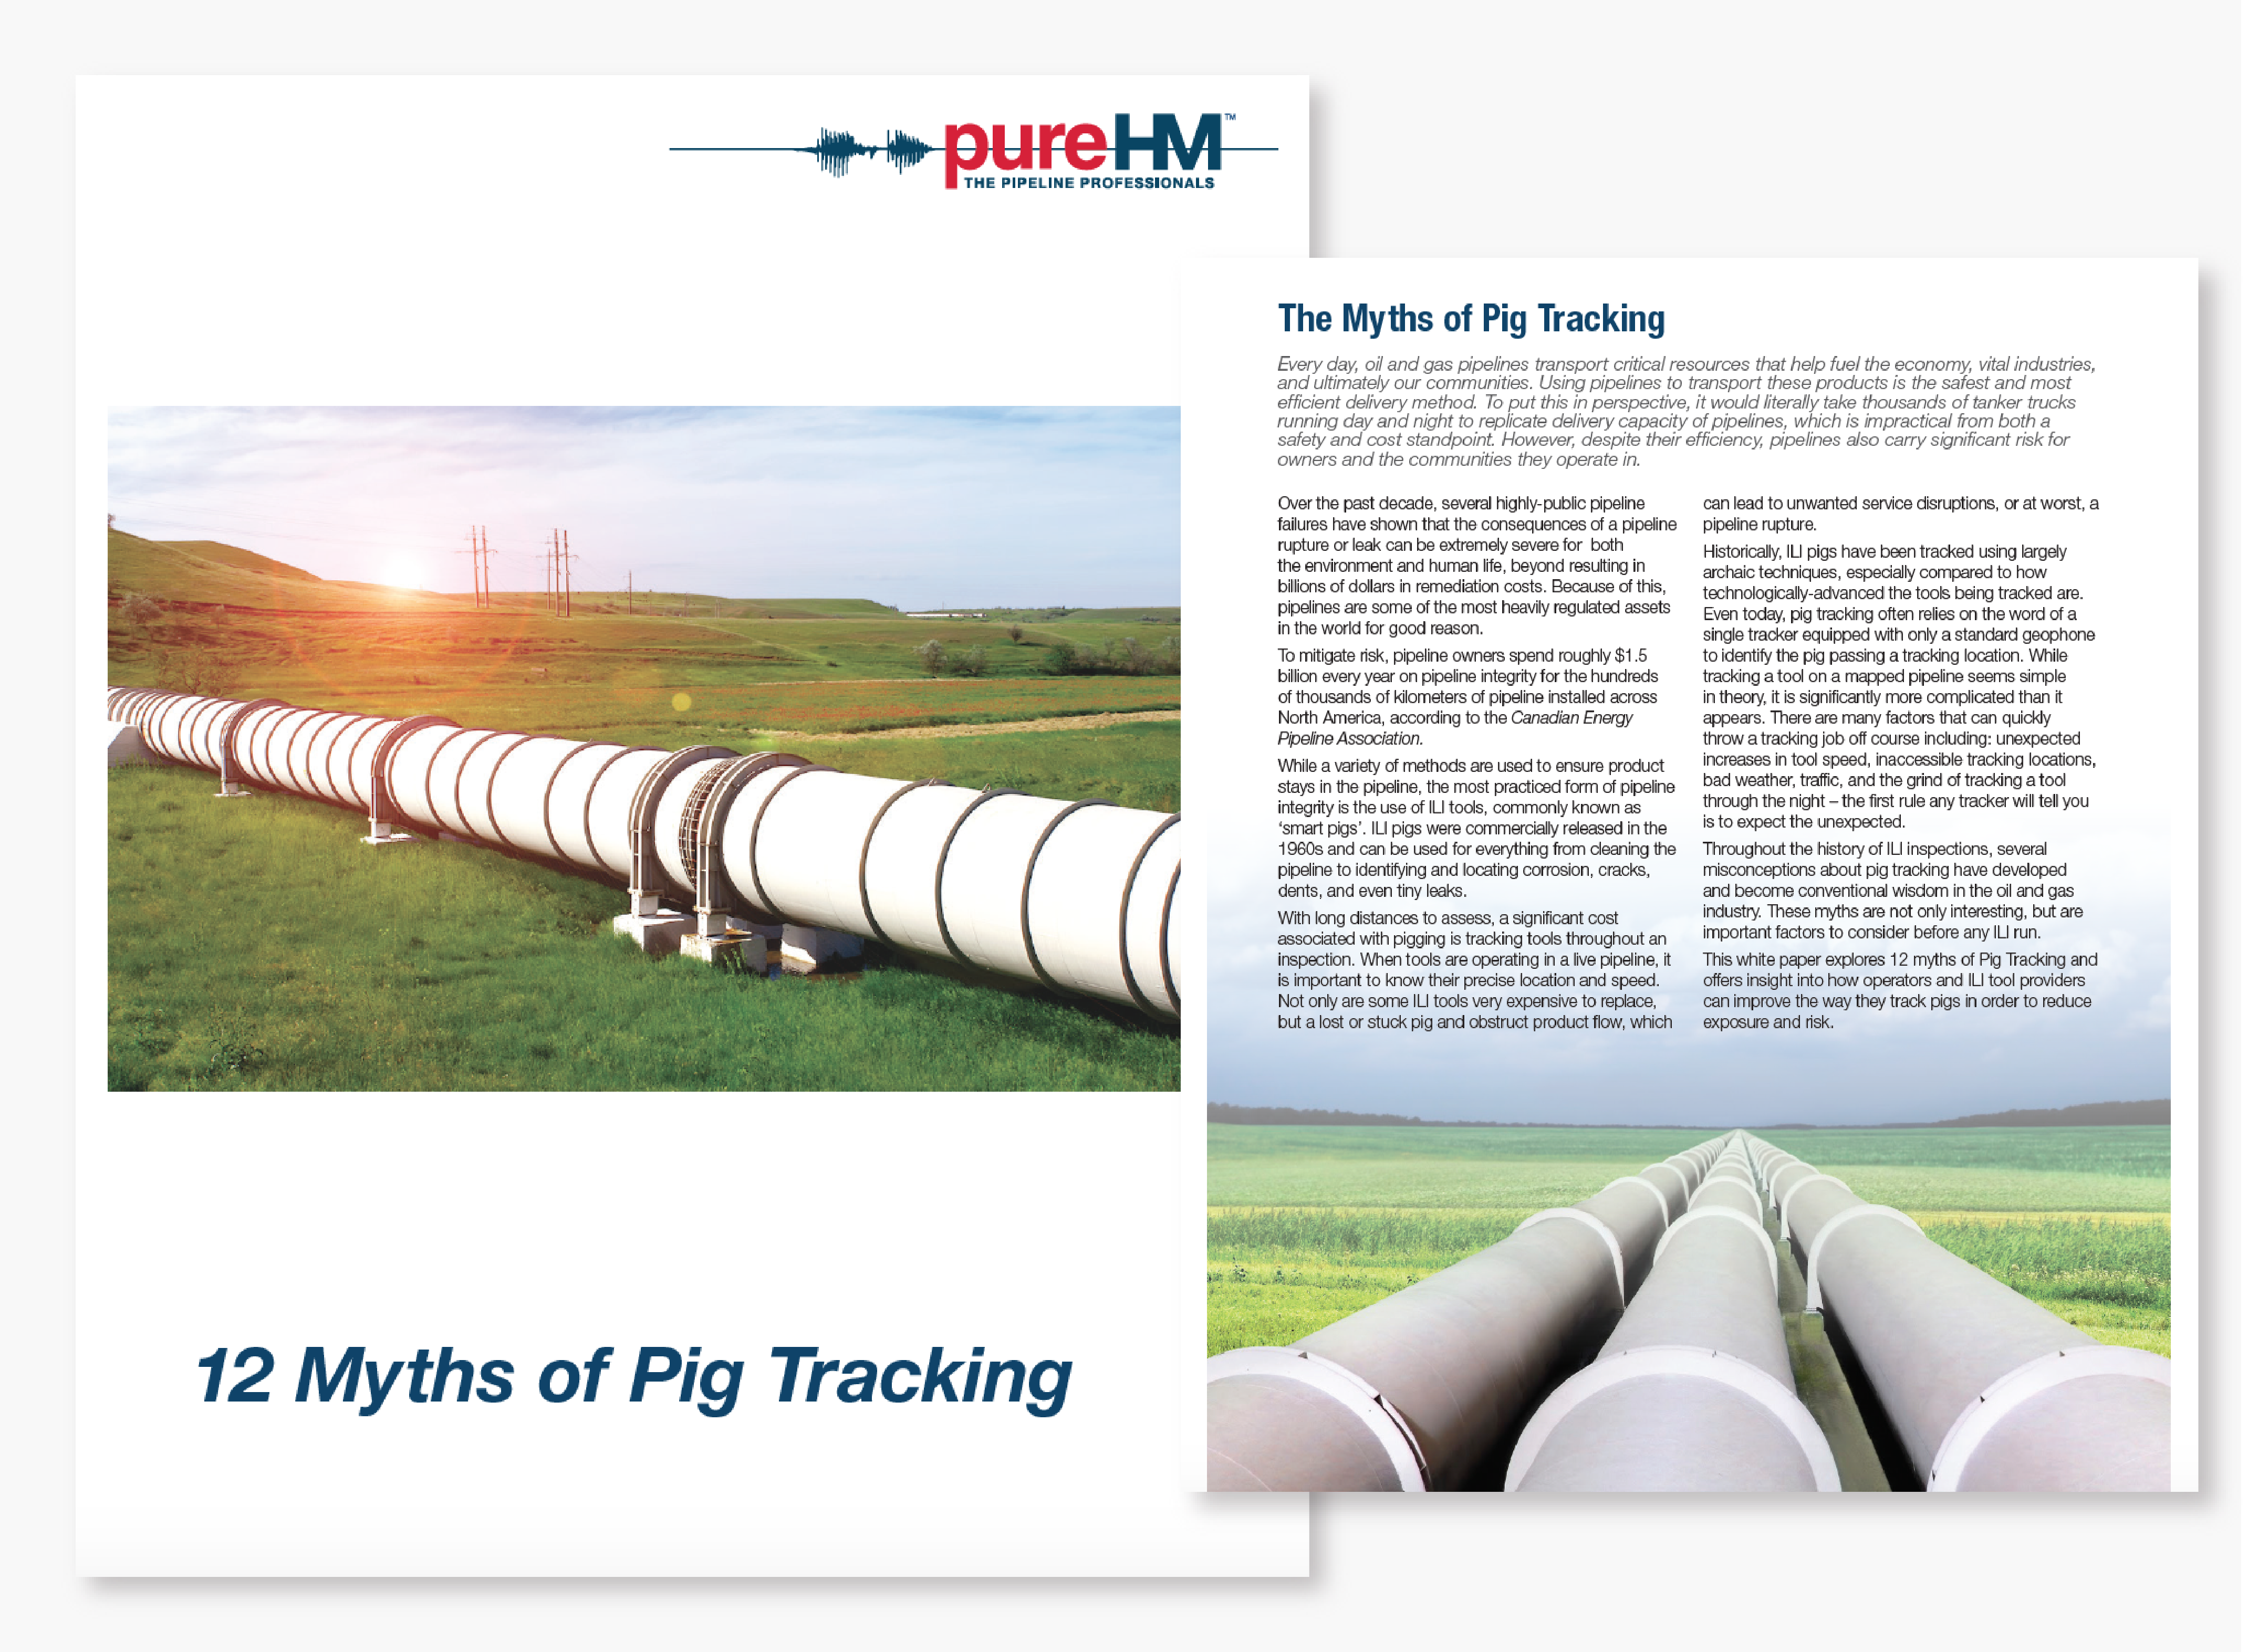 12 Myths of Pig Tracking